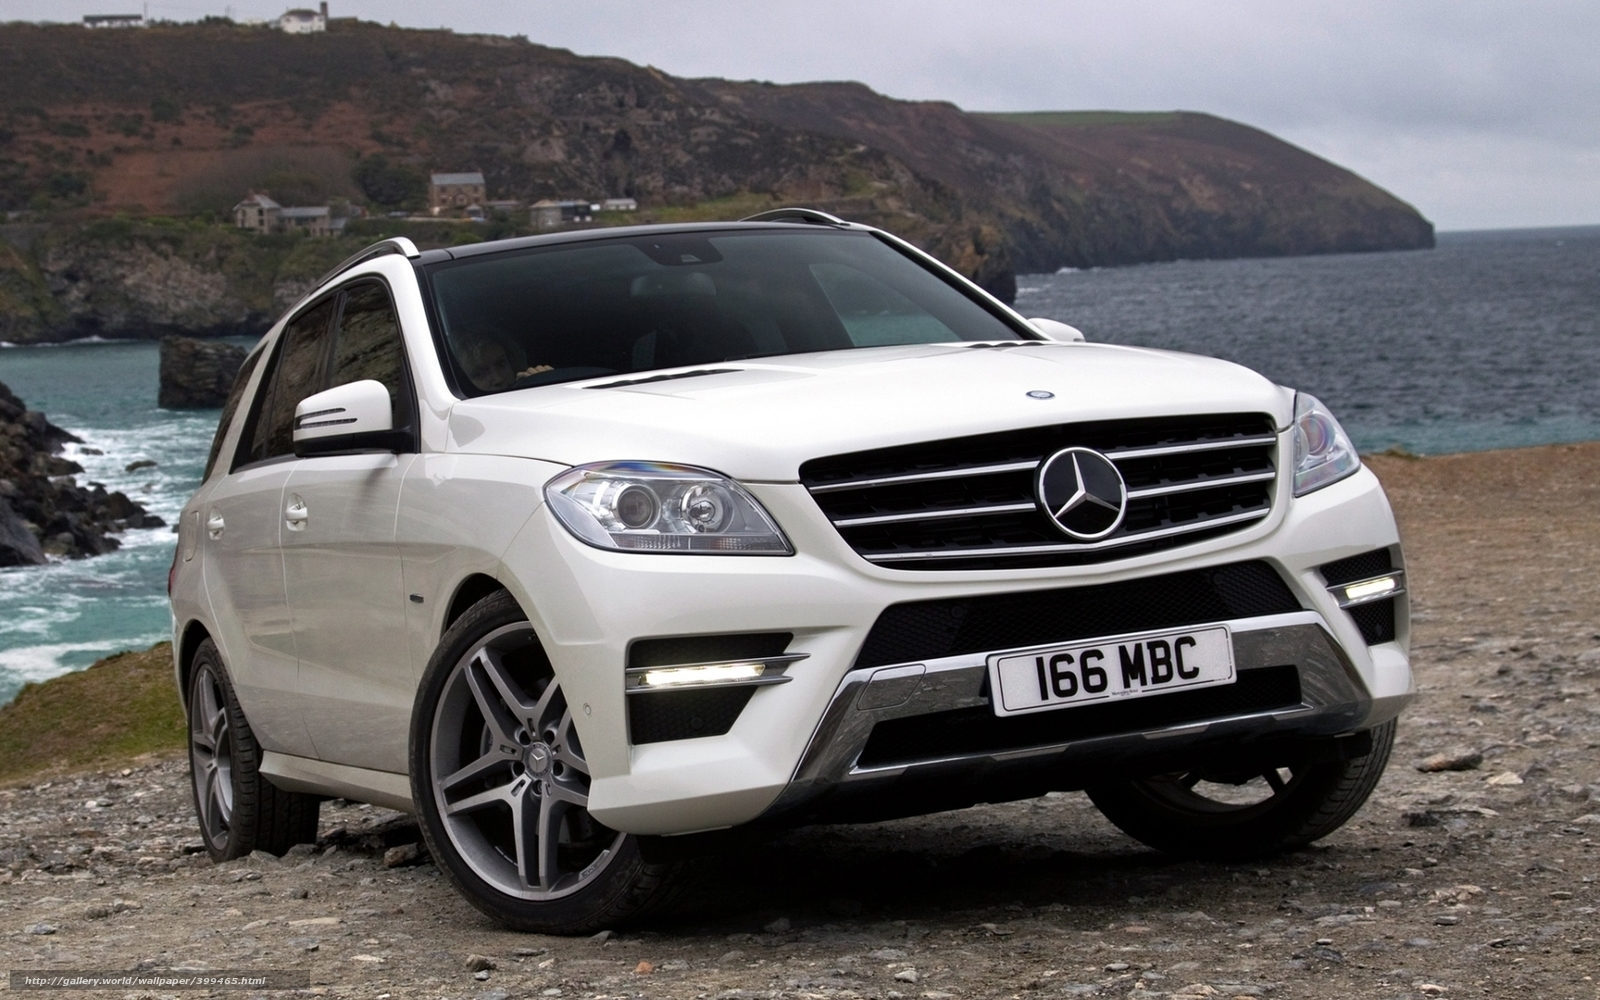 Download wallpaper mercedes ml jeep crossover free for Mercedes benz jeeps